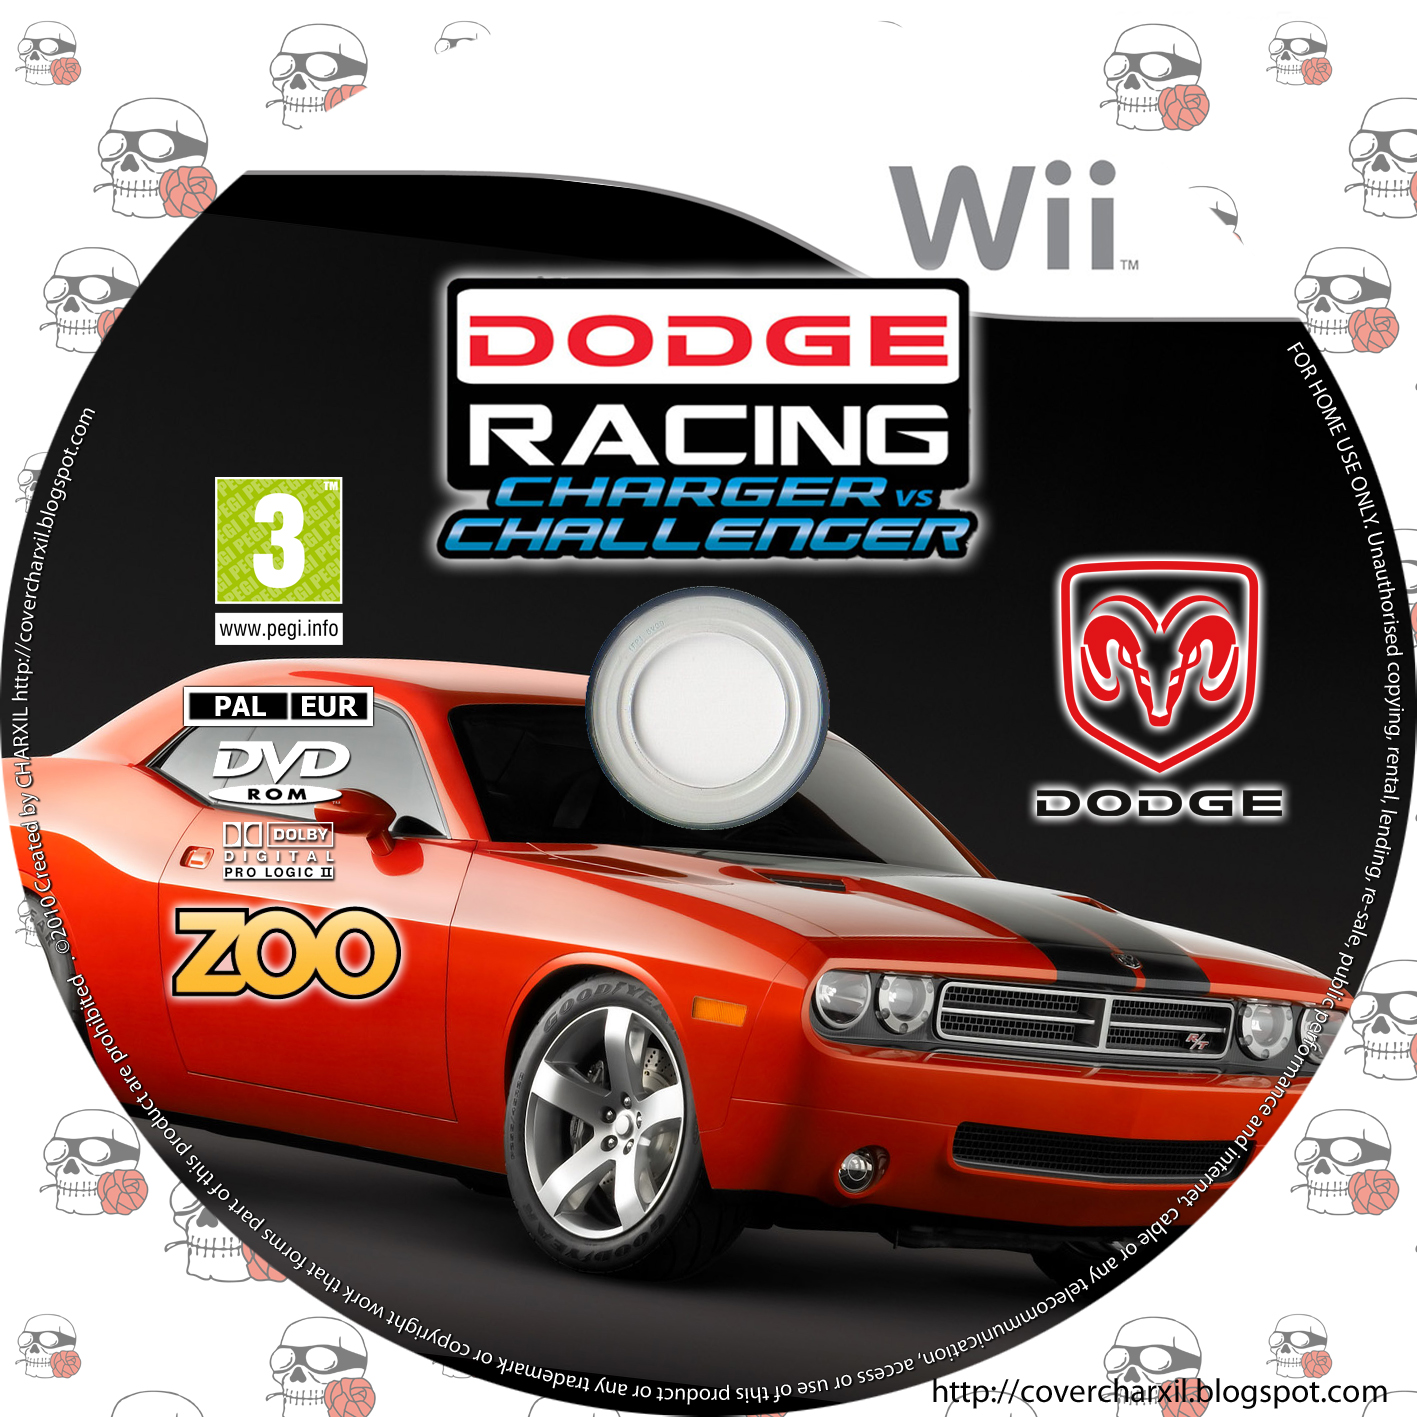 Dodge Racing: Charger vs Challenger (wii)